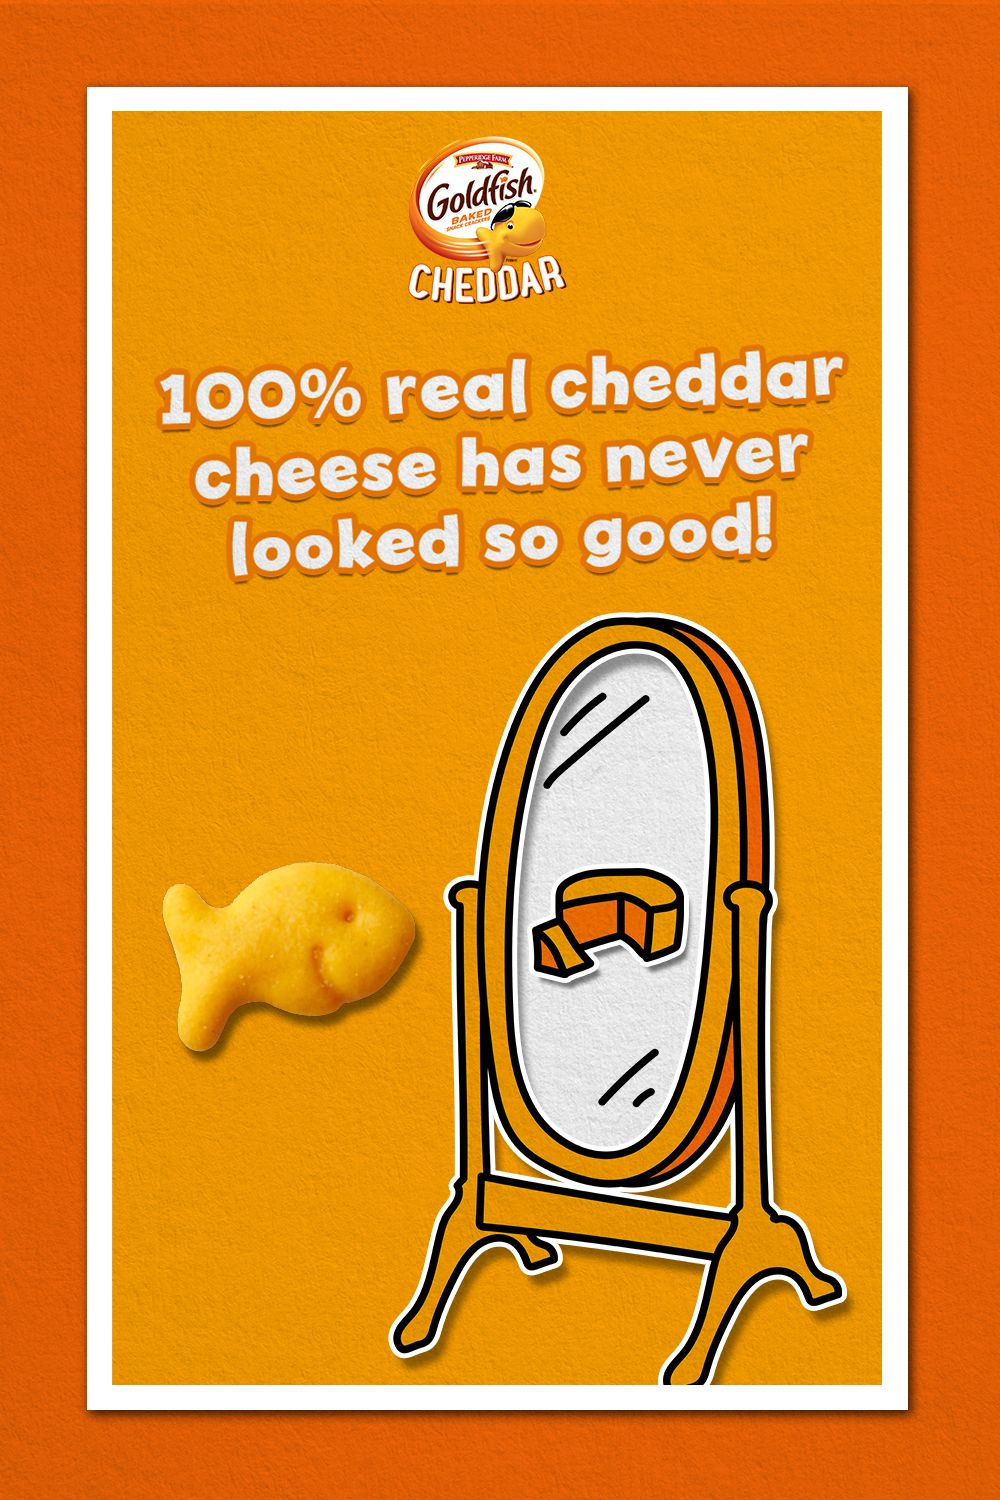 Who's the cheesiest of them all?